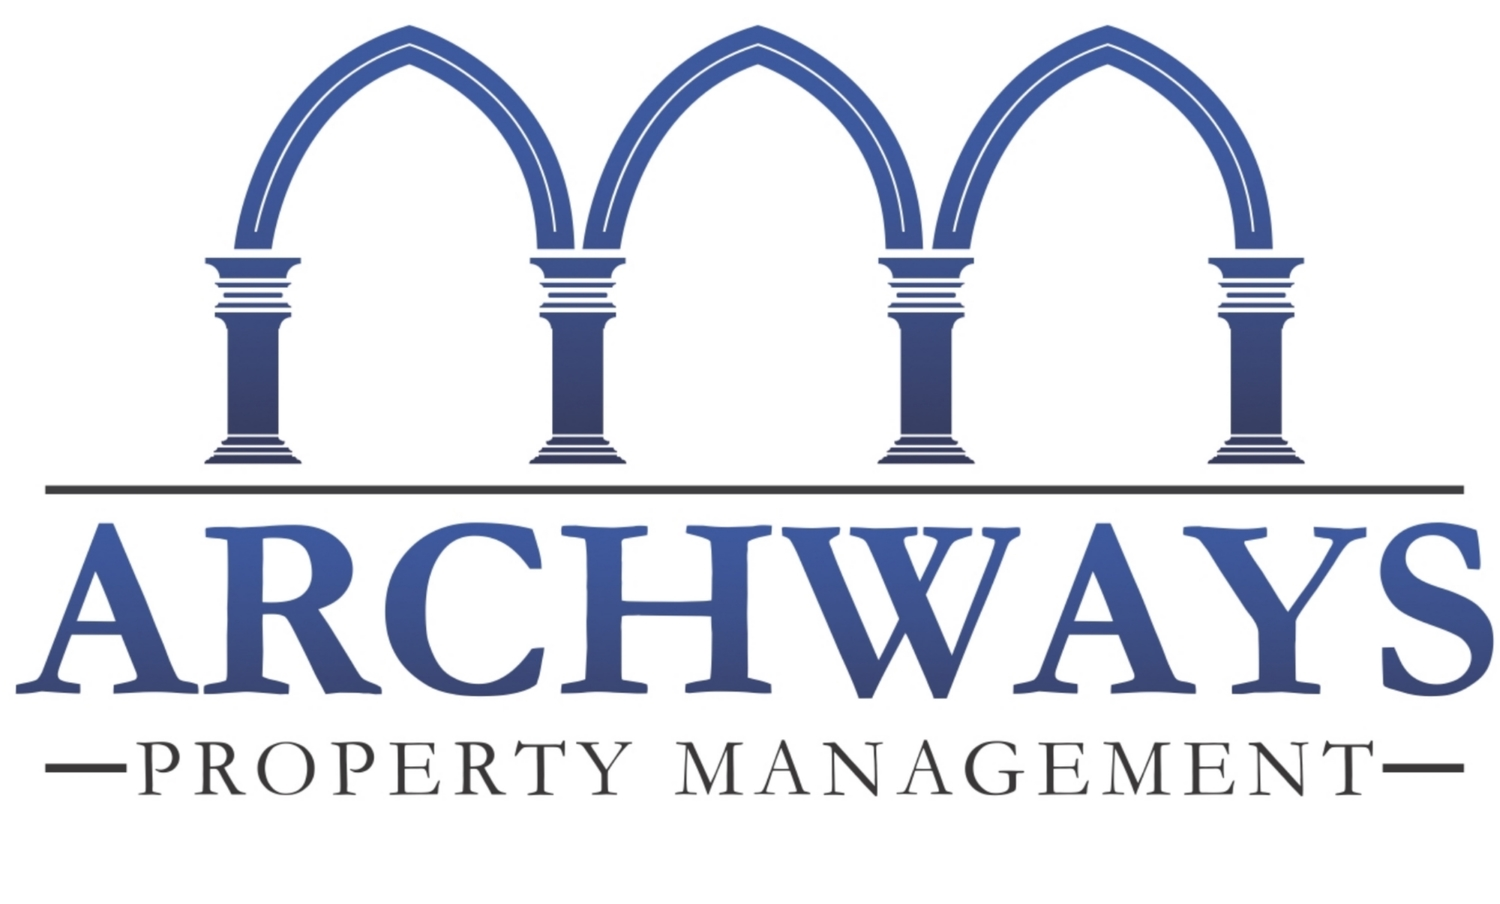 Archways Property Management